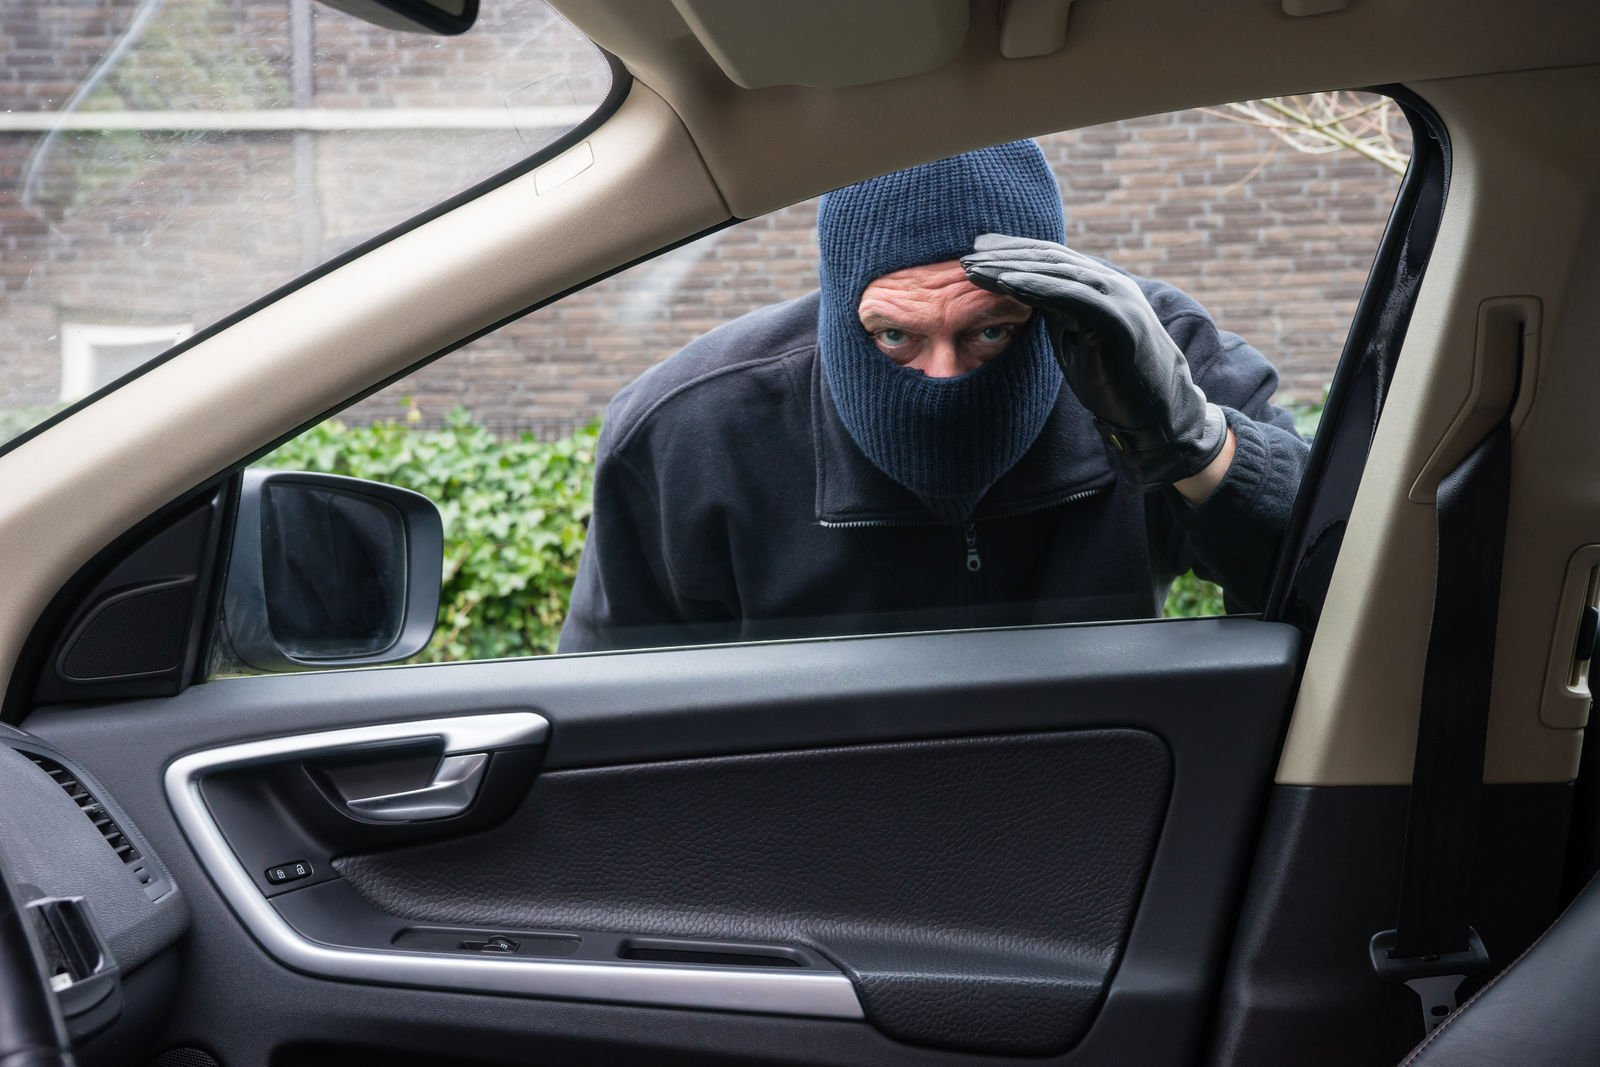 Car Insurance for a Stolen Vehicle